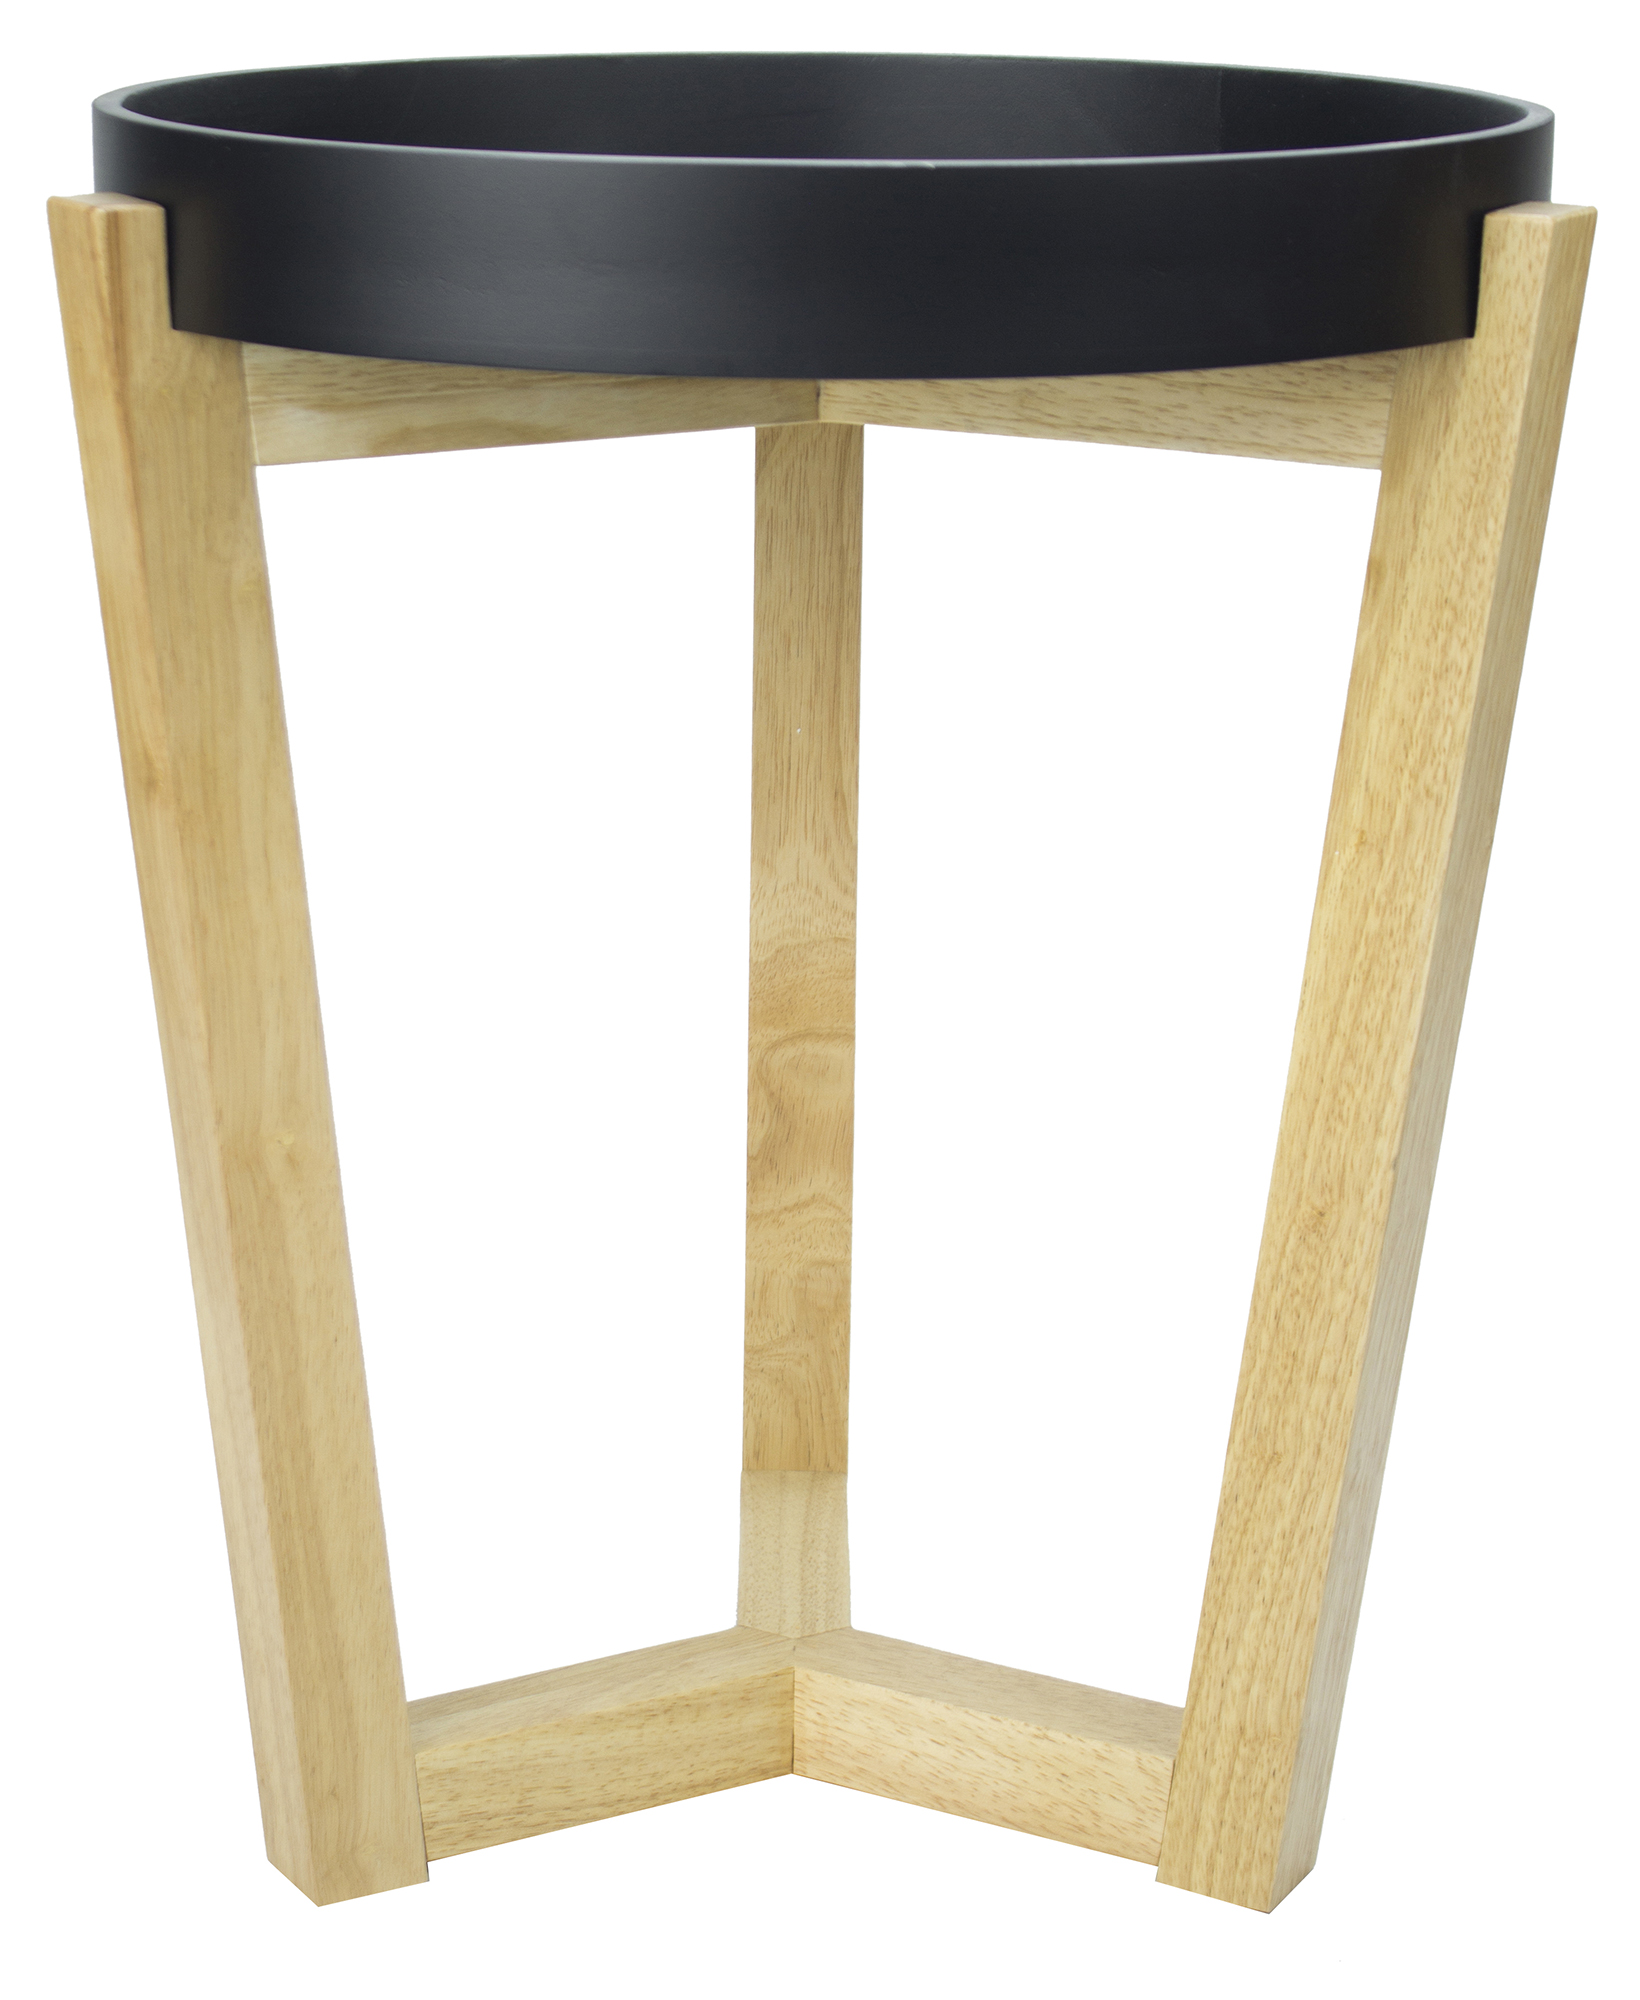 "20"" Black End Table"